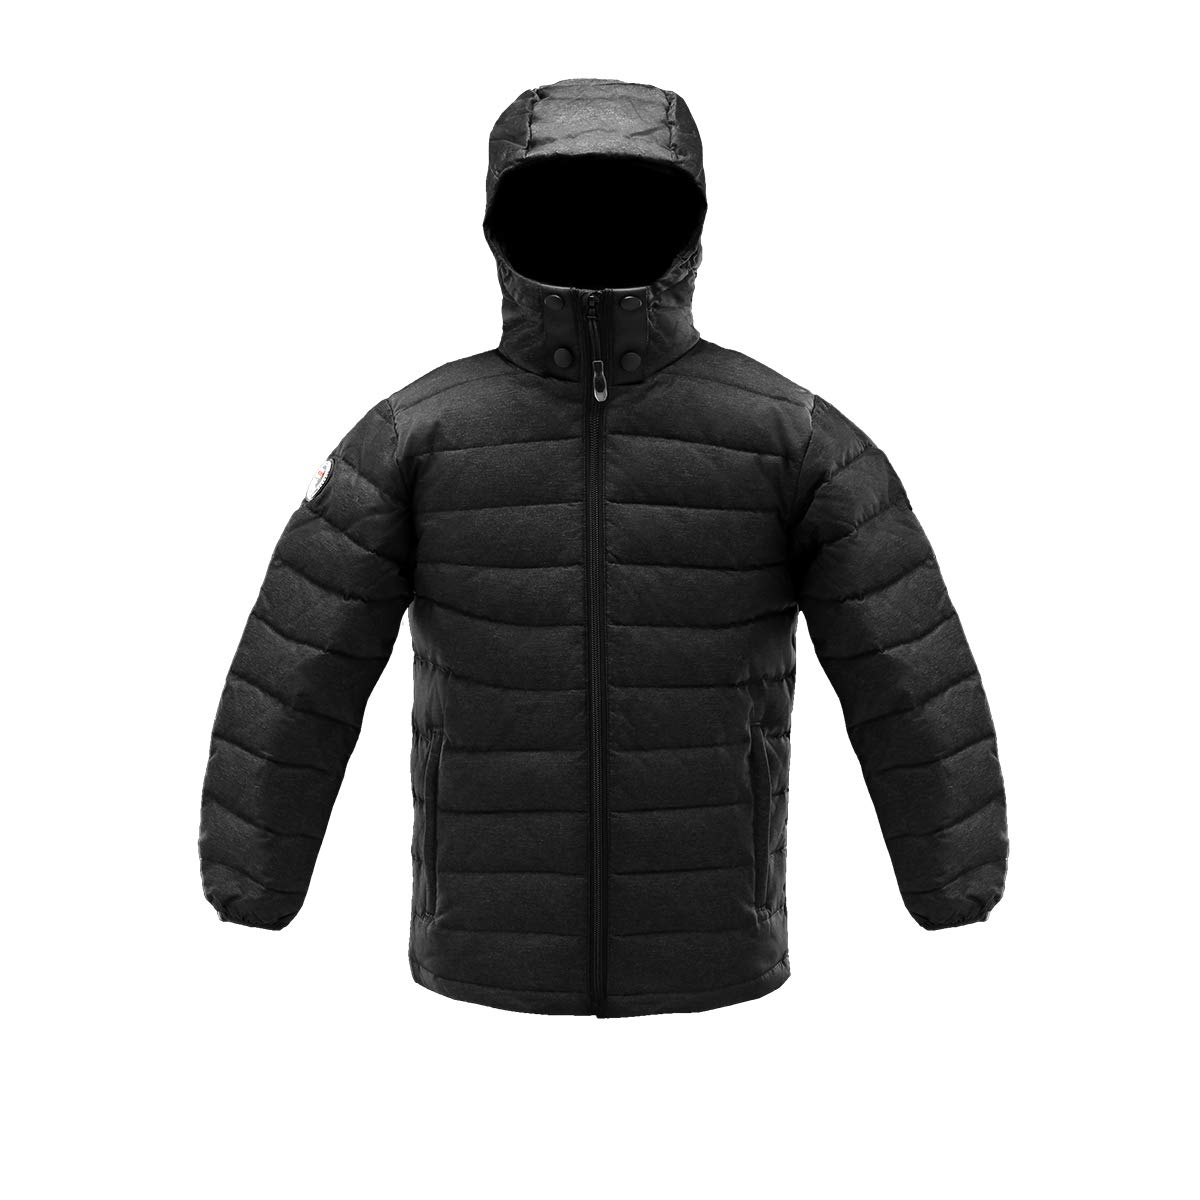 Triple F.A.T. Goose SAGA Collection   Boys 750 Fill Power Light Weight Down Jacket (8/10, Black)